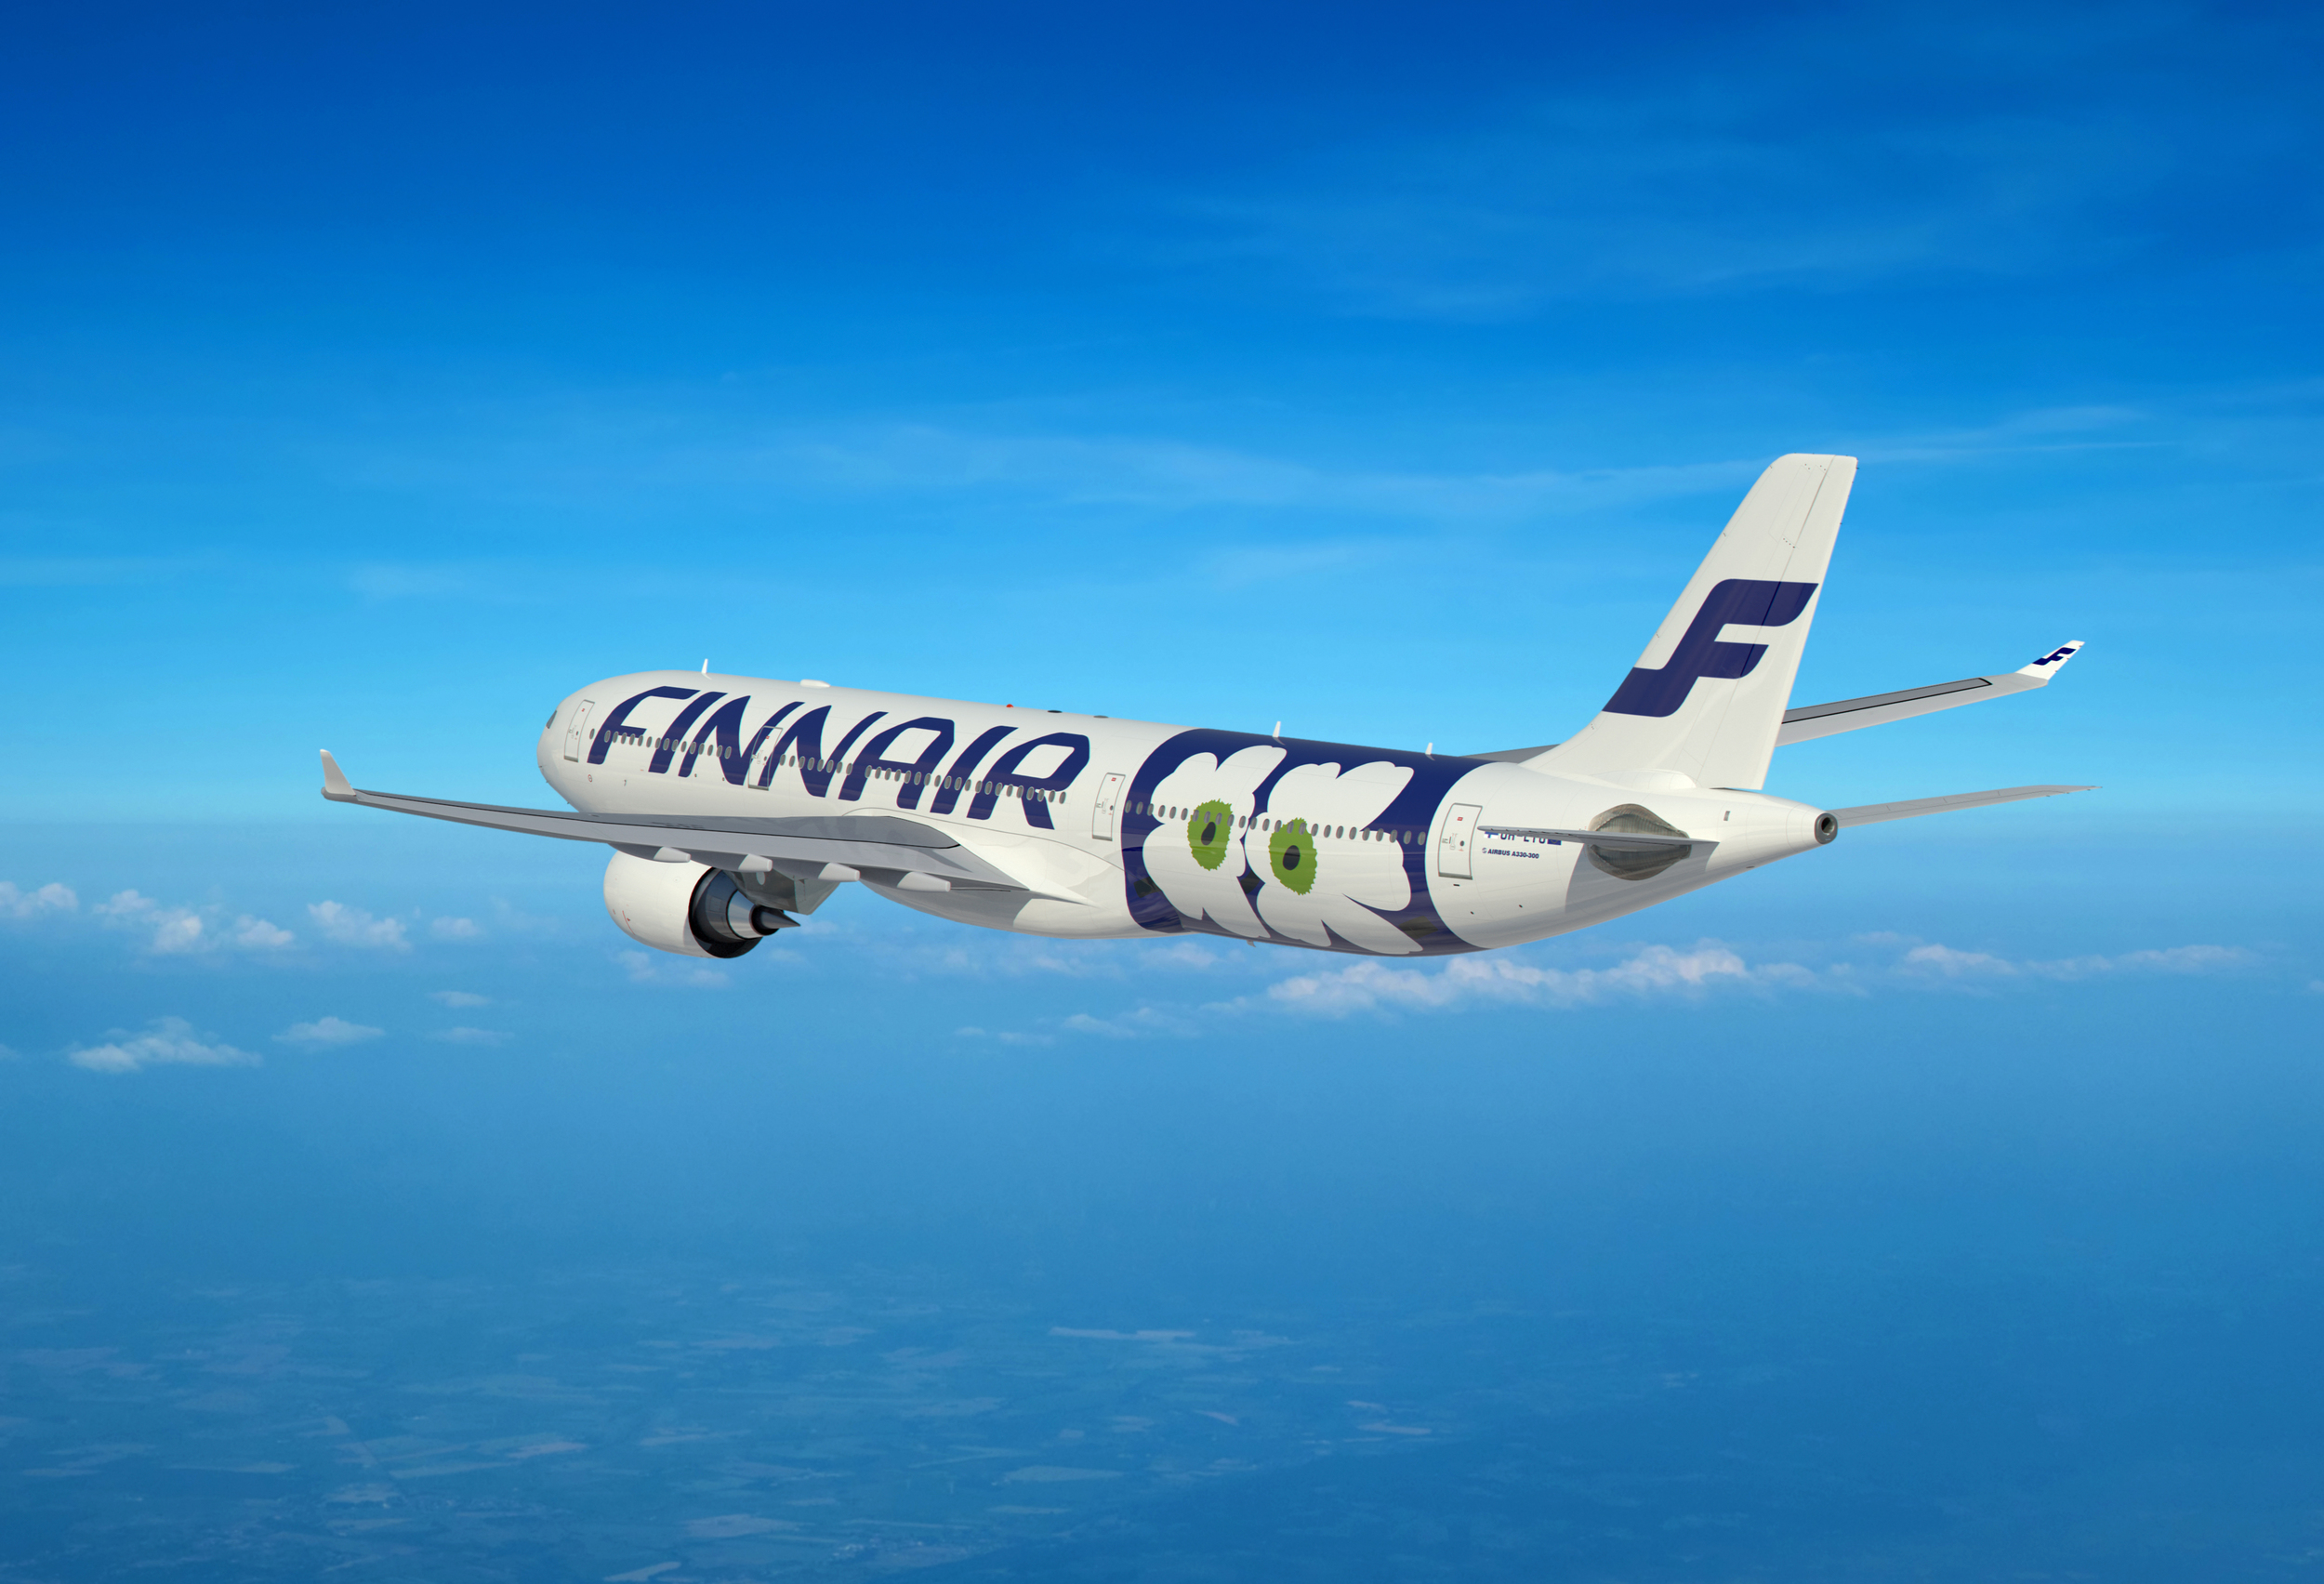 Somehow and improvement on Finnair's minimalist livery. Picture: Finnair